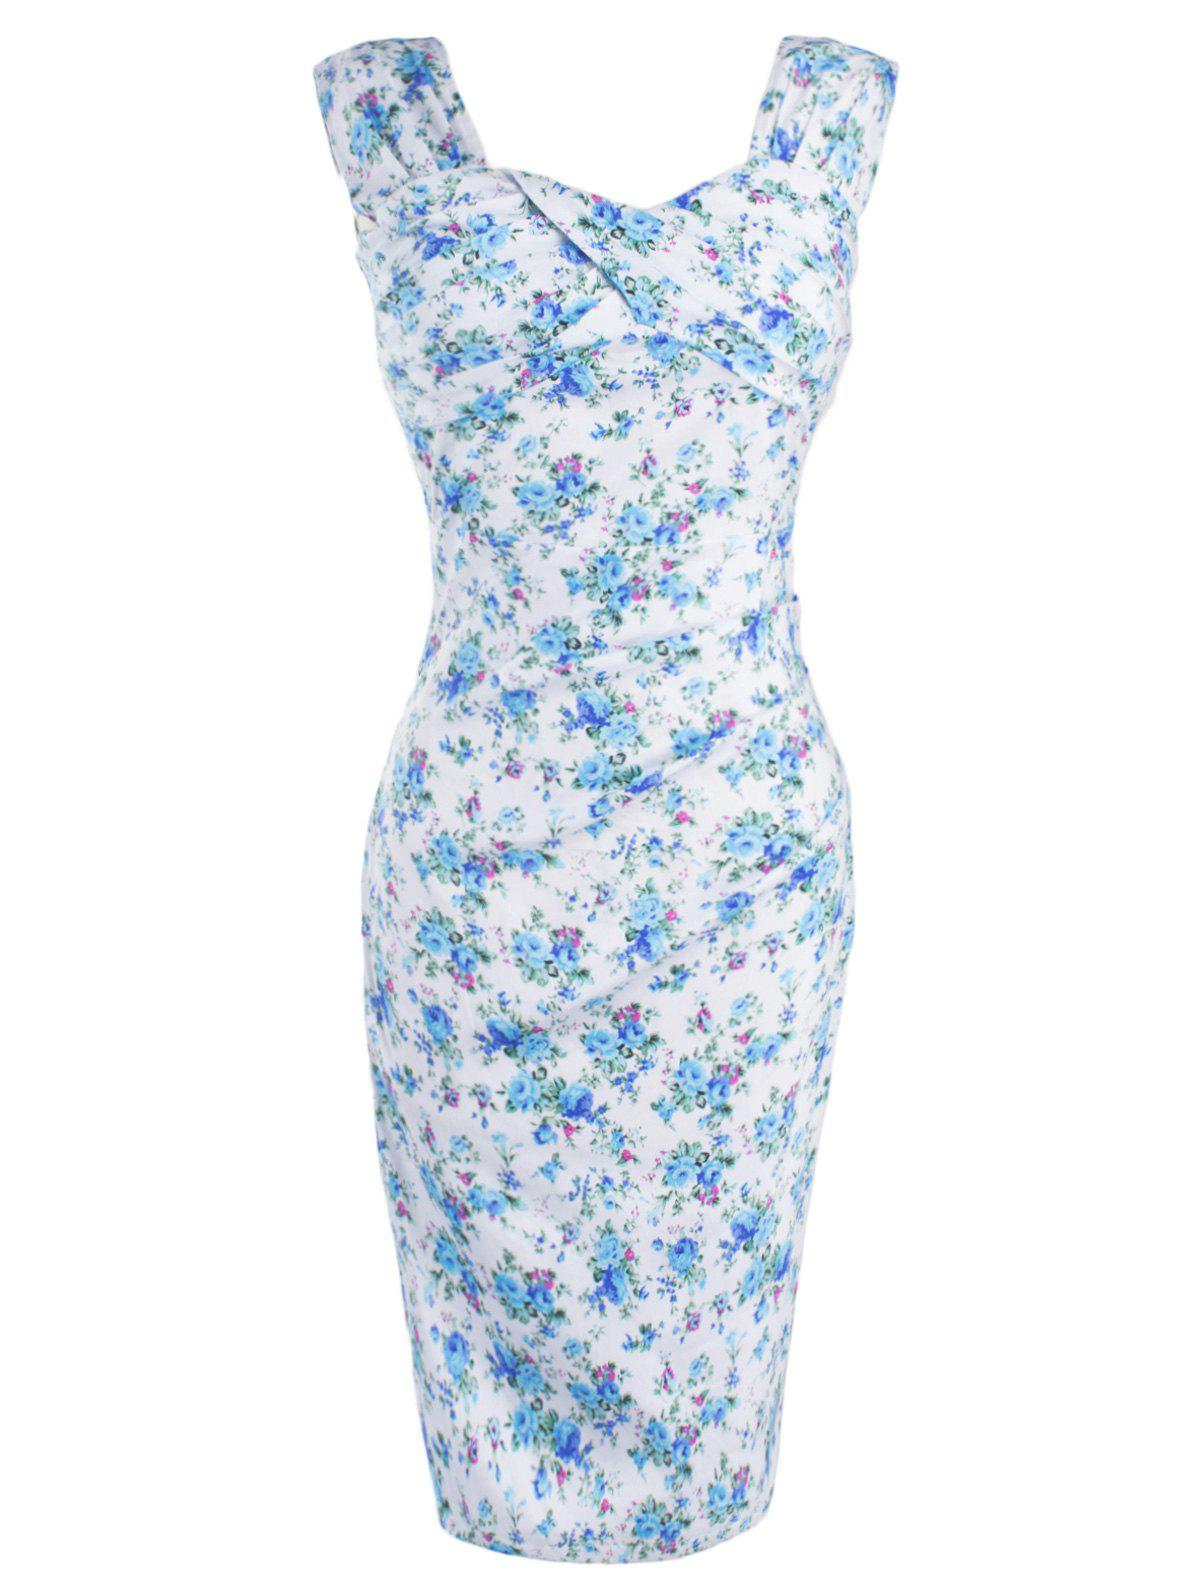 Retro Style Tiny Floral Print Bodycon Dress - LIGHT BLUE XL